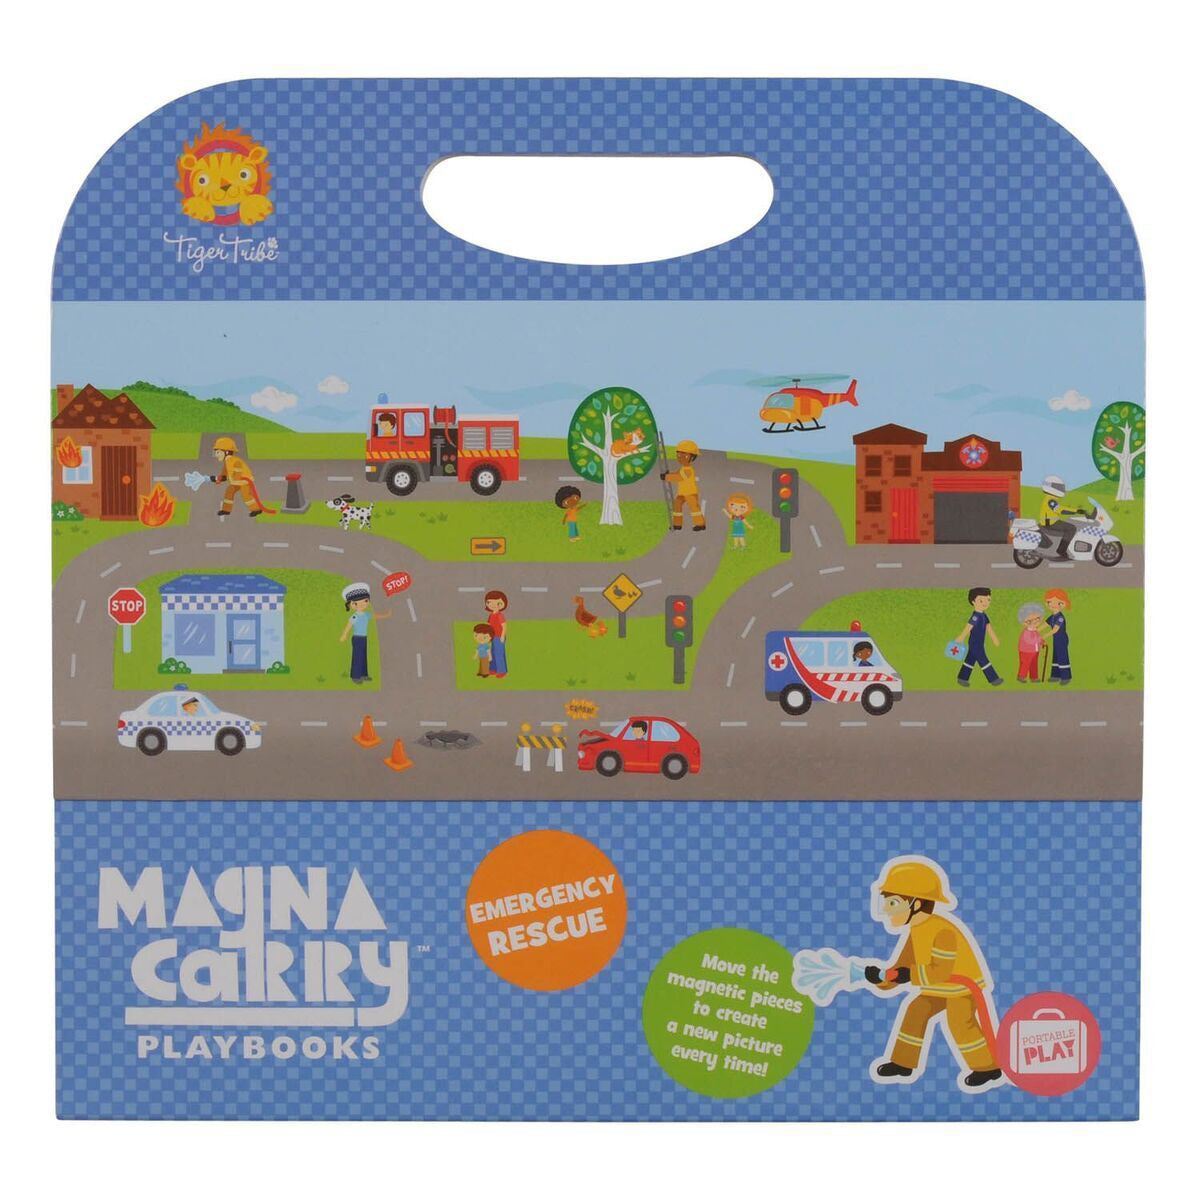 tiger tribe magna carry emergency rescue - Chalk